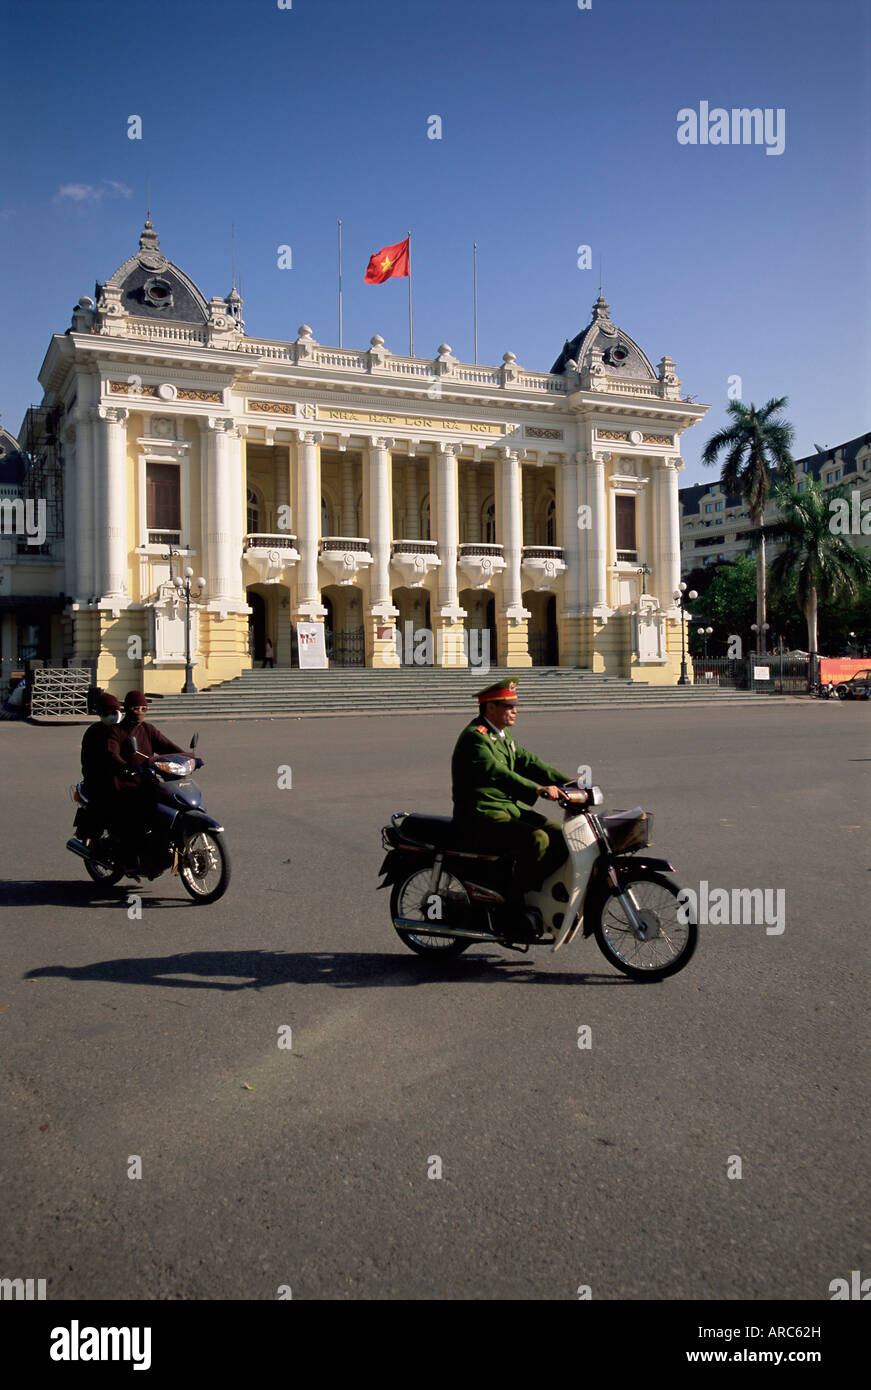 Exterior of the Opera House, Hanoi, Vietnam, Indochina, Southeast Asia, Asia - Stock Image